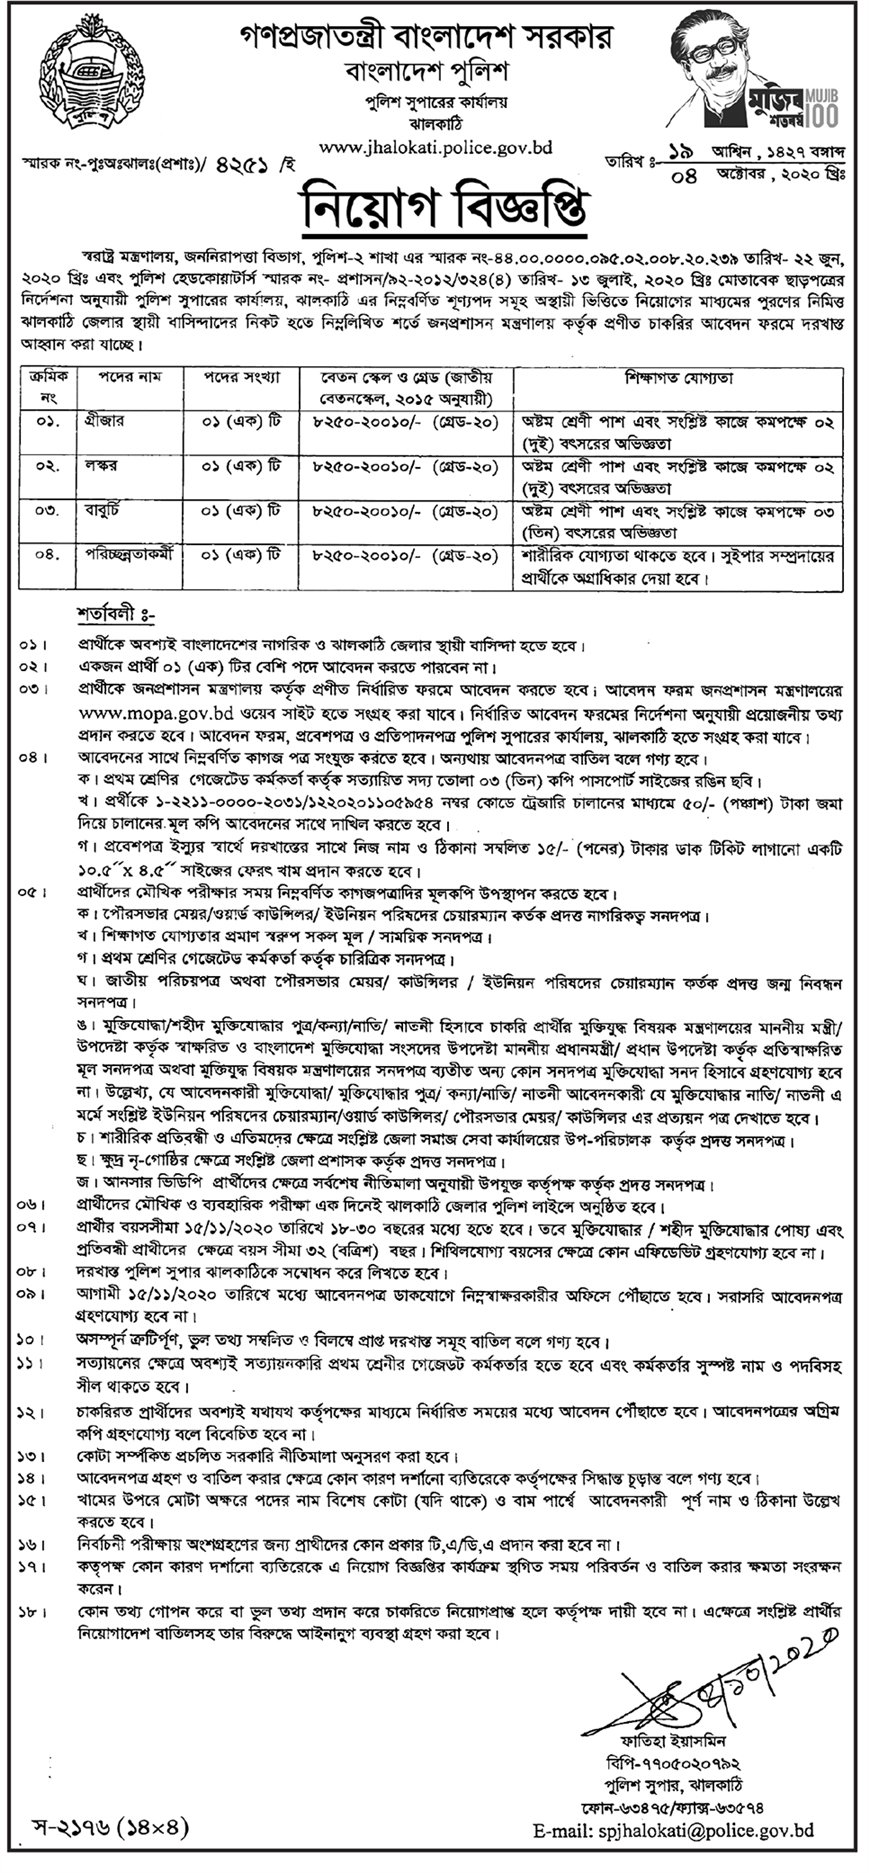 Bangladesh Police Supper Office Job circular 2020